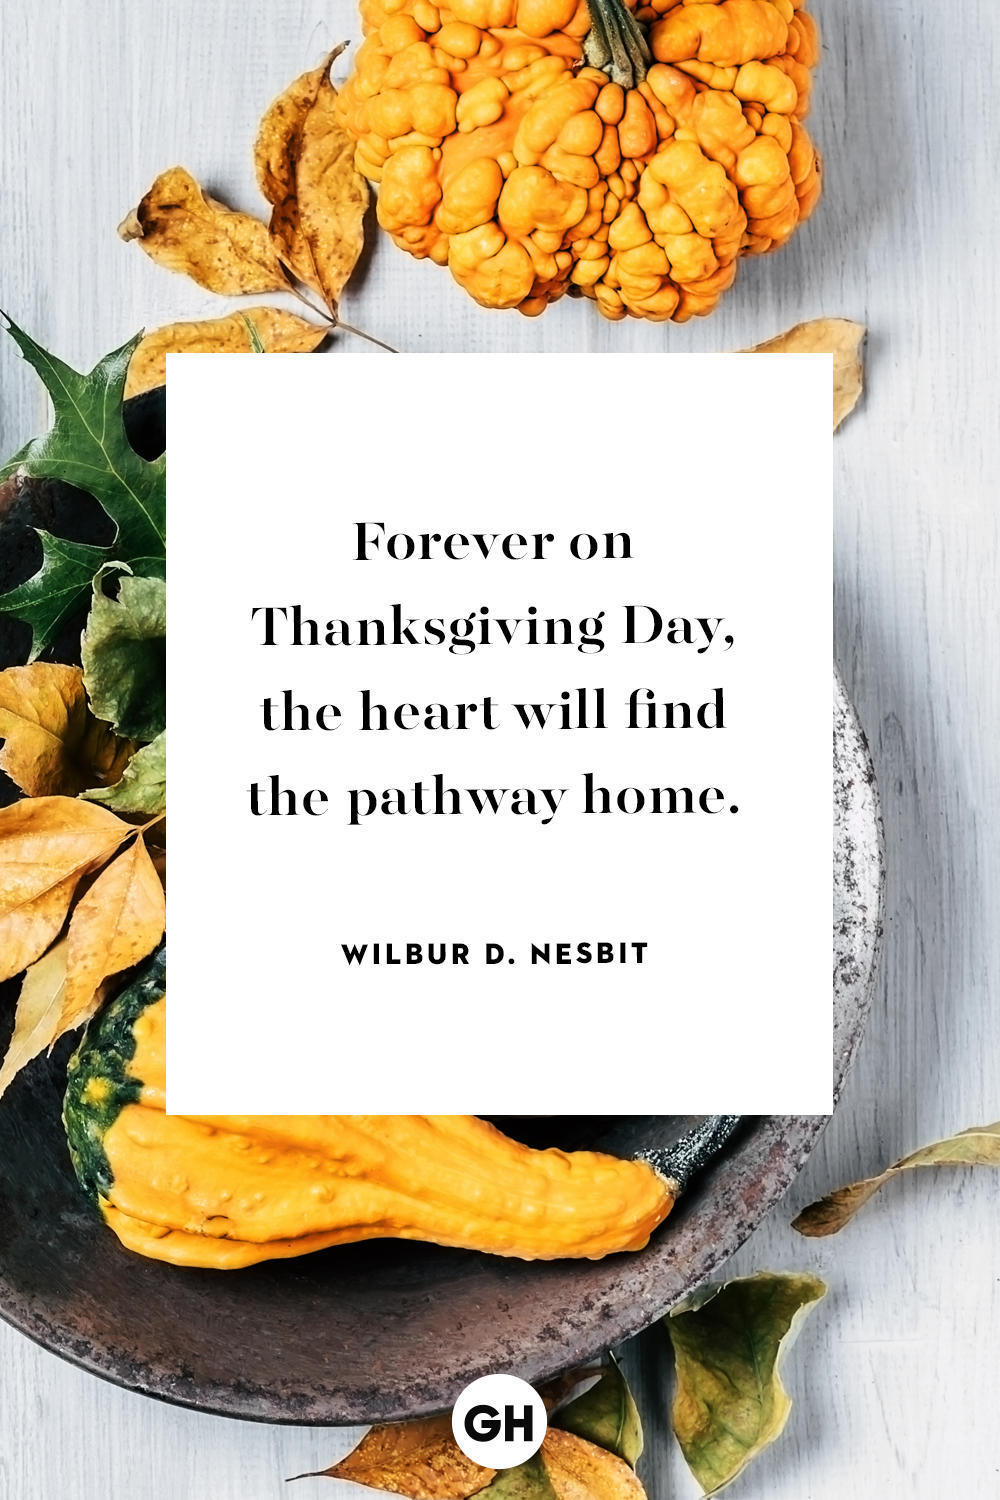 50 Best Thanksgiving Quotes - Inspirational and Funny Quotes About  Thanksgiving